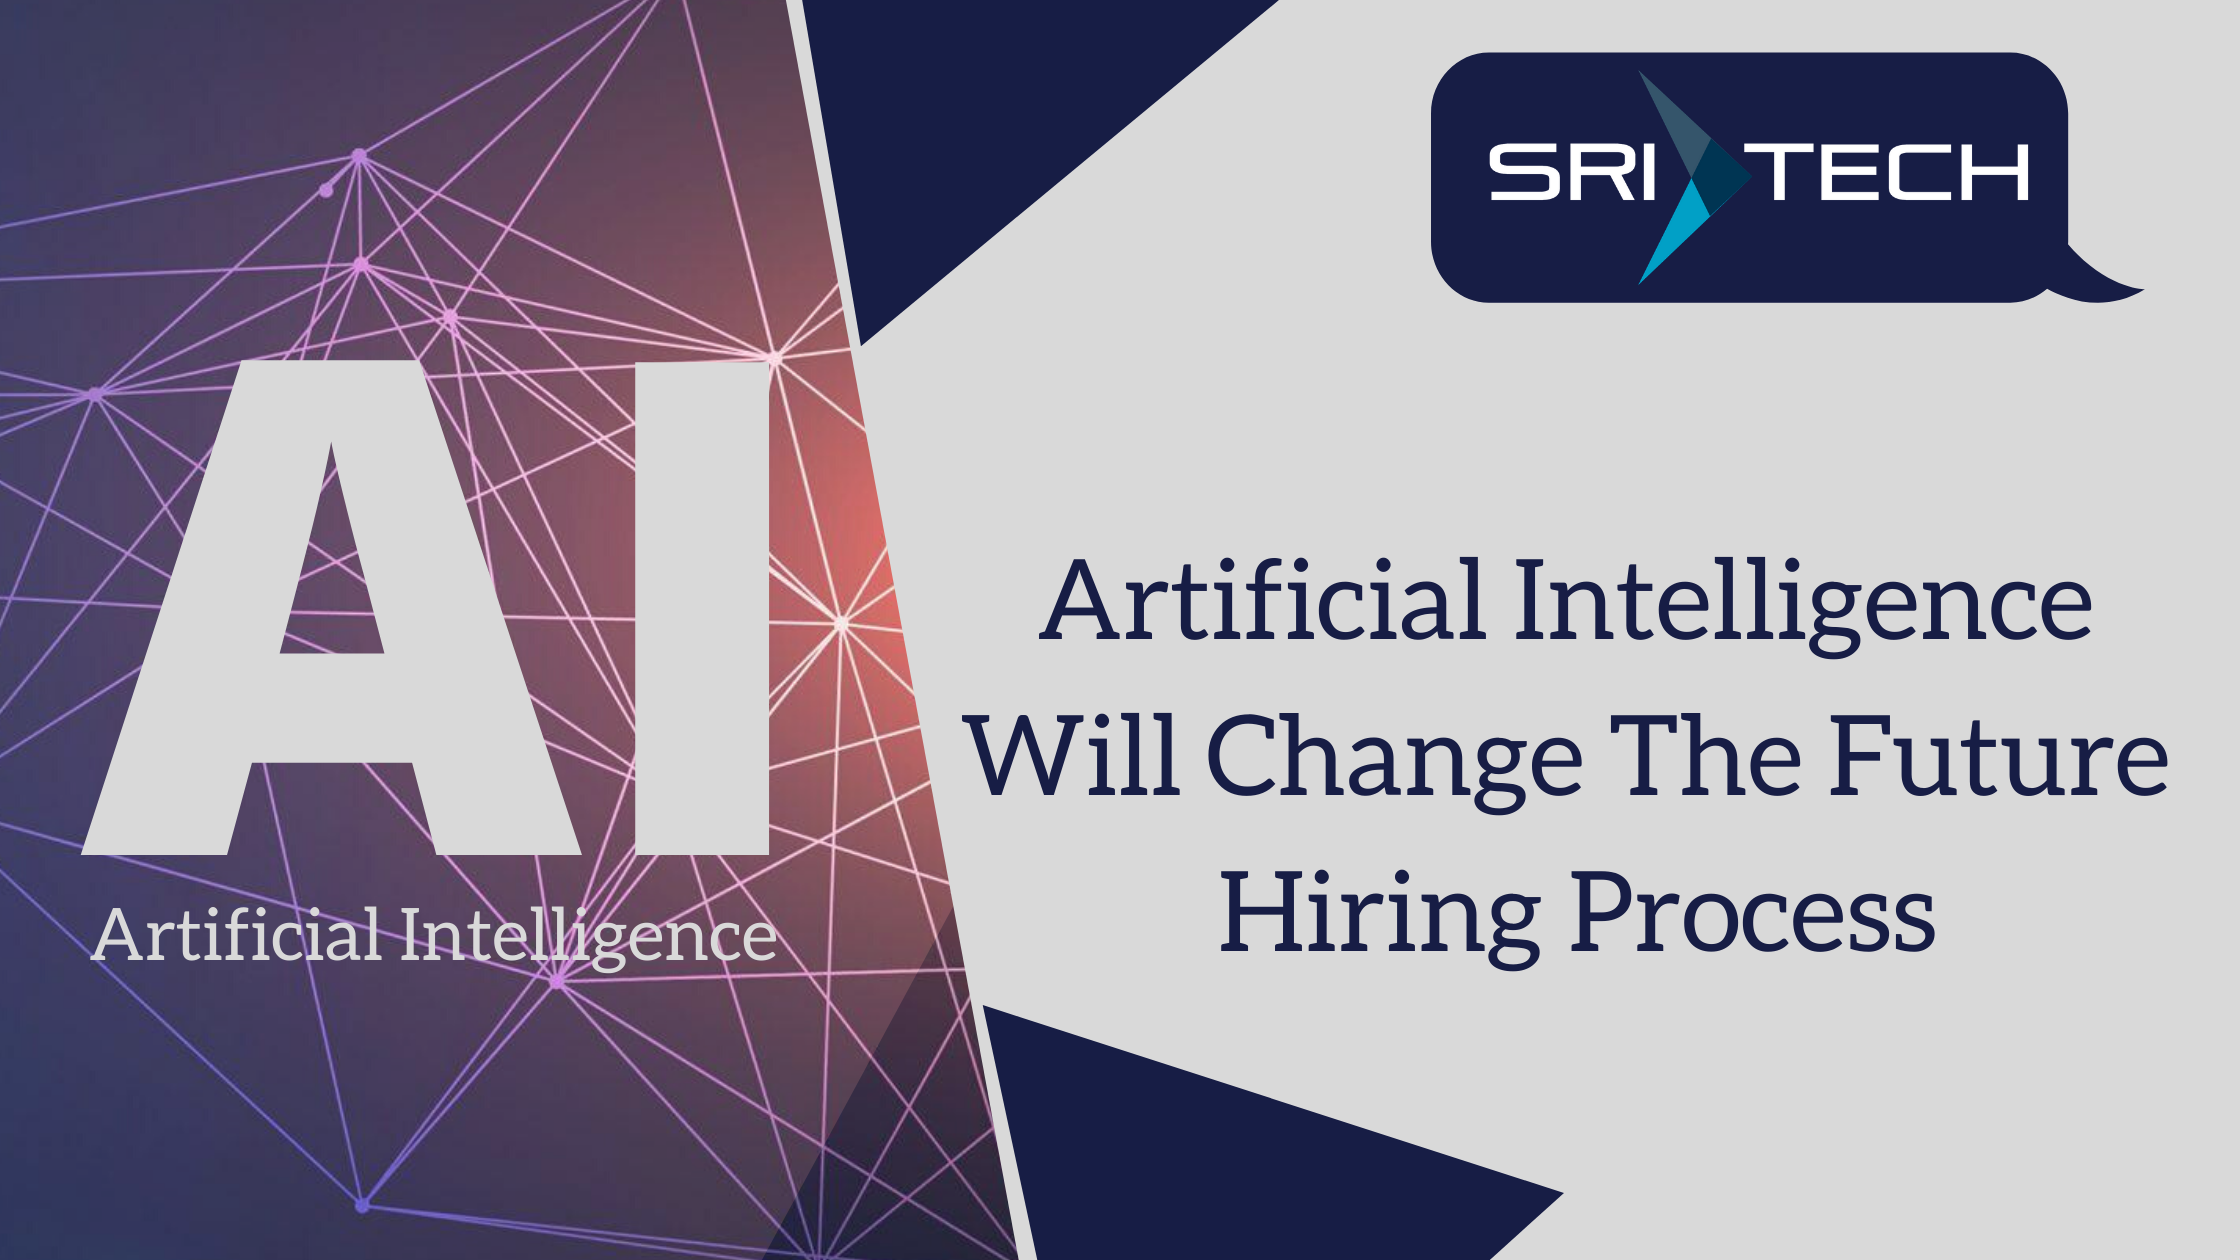 Artificial Intelligence will change the future hiring process